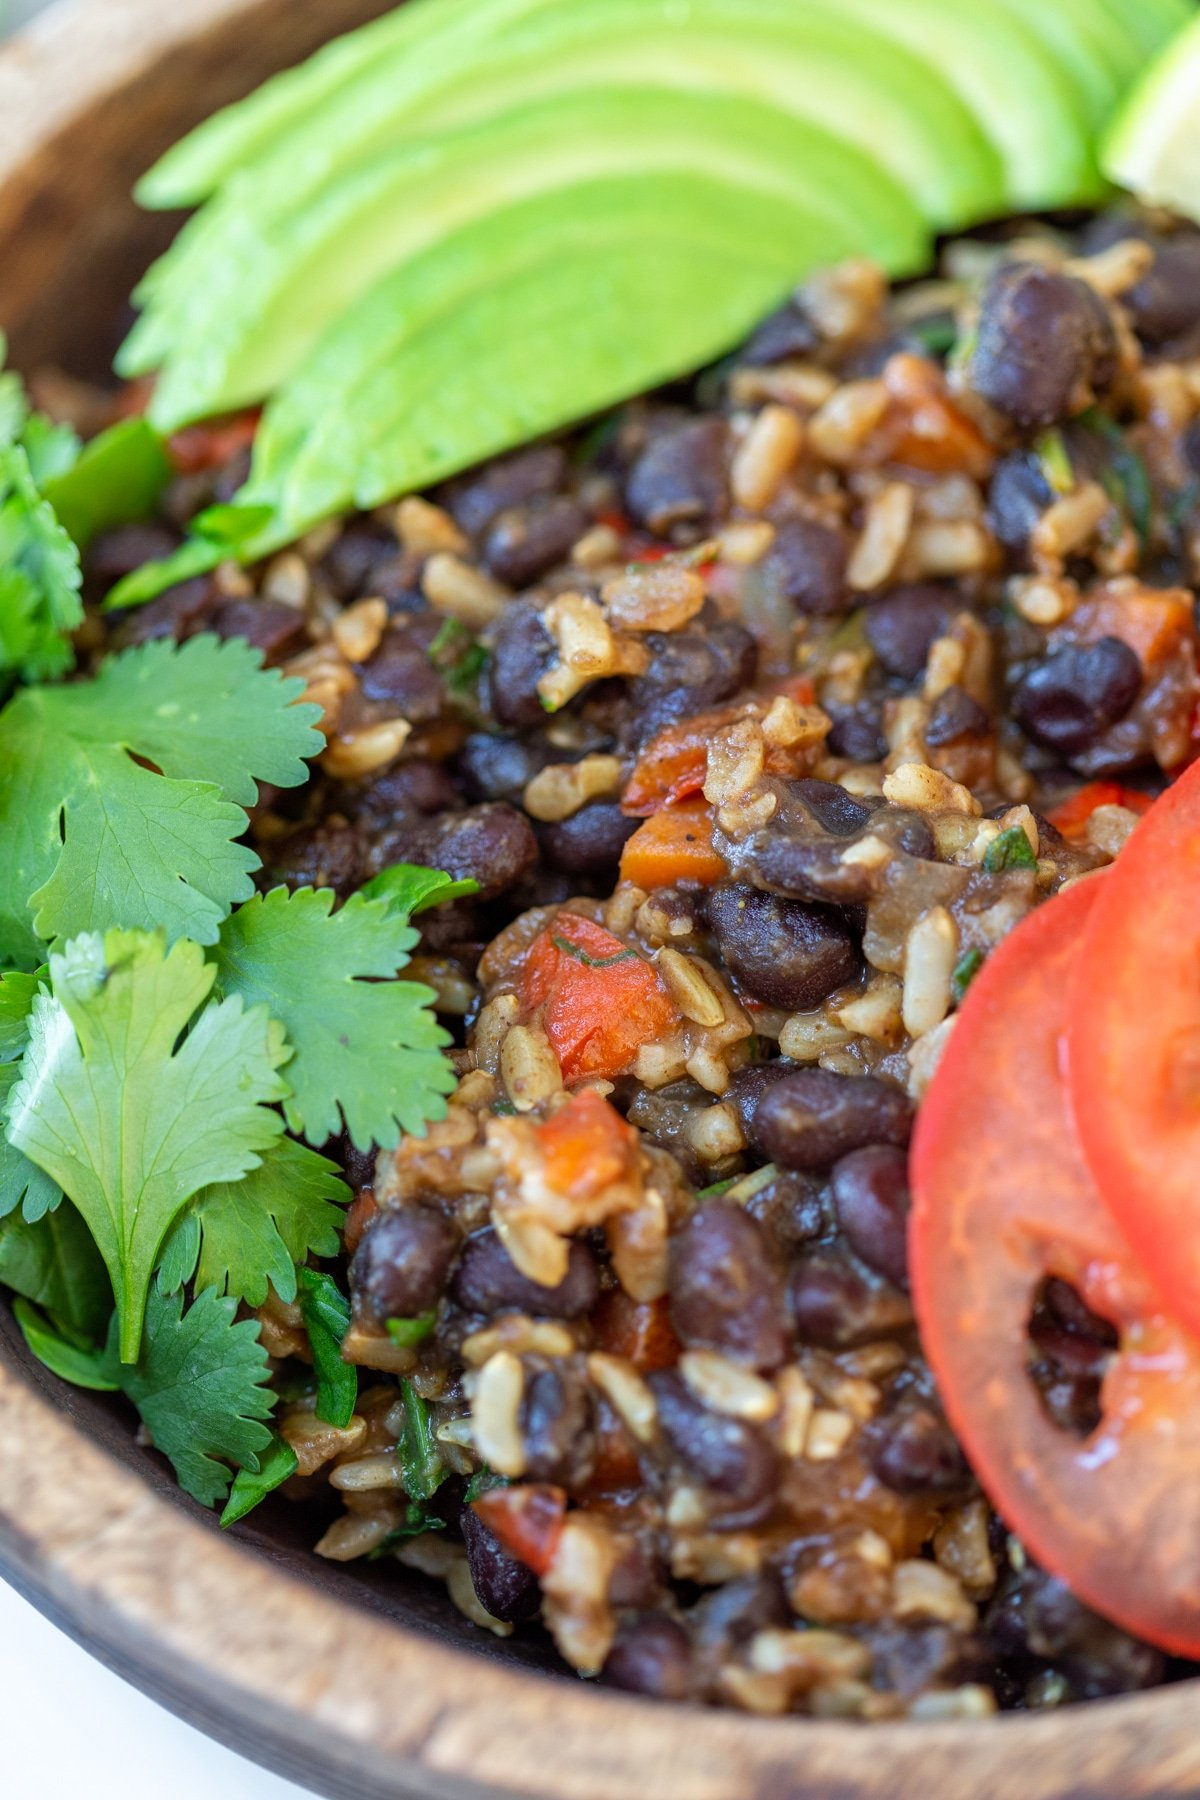 A close up picture of black beans, rice, and vegetables with slices of tomatoes and avocado and fresh cilantro leaves.